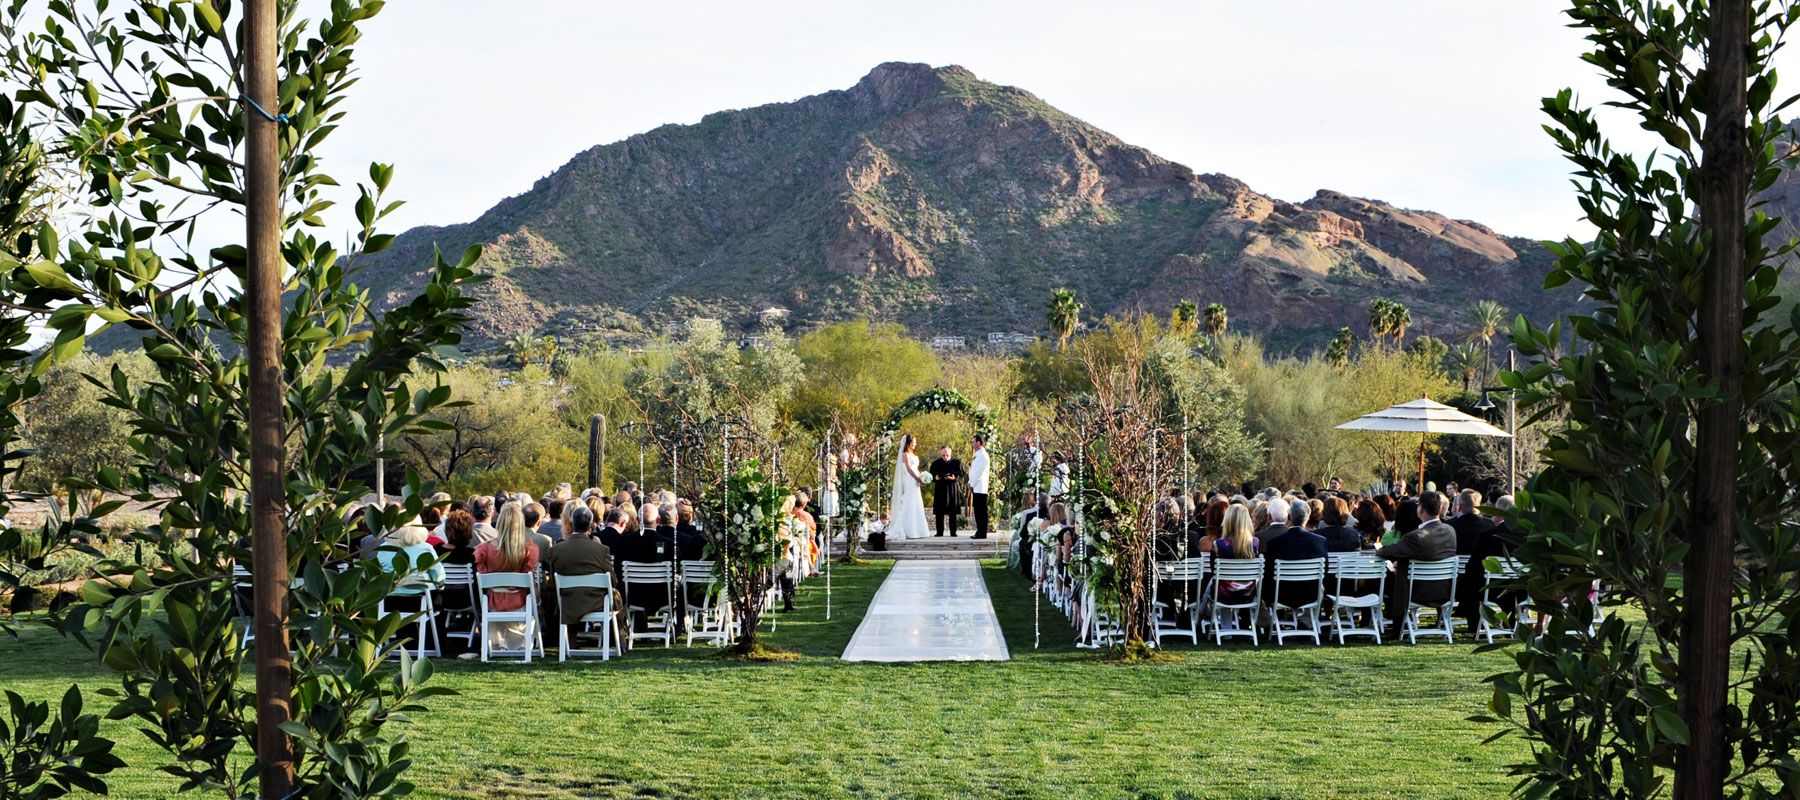 The Best Outdoor Wedding Venues In The Phoenix, Arizona